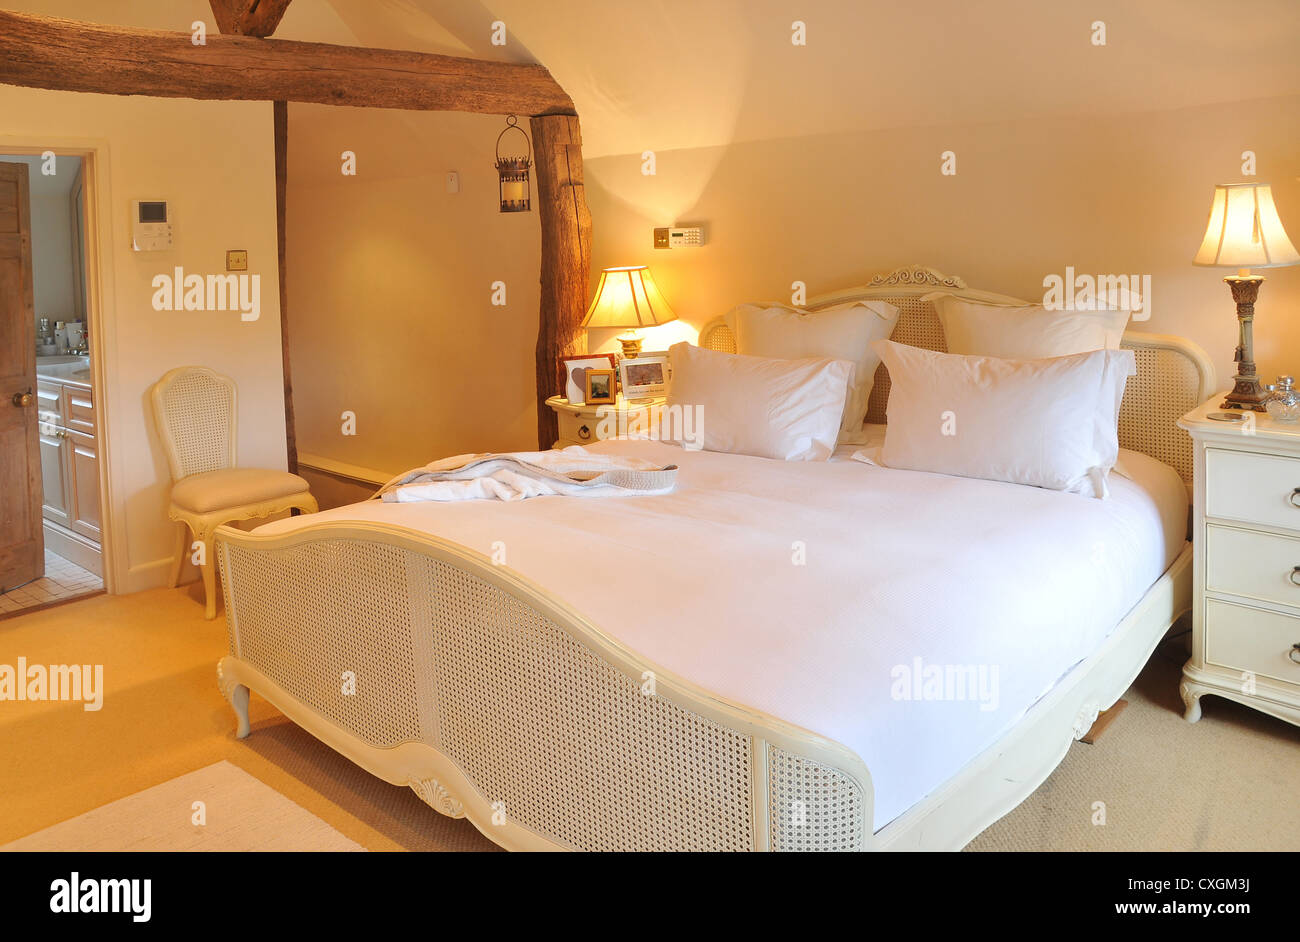 The interior designed bedroom of an english cottage with bed, bedside cabinets, lights, chairs and en suite bathroom. - Stock Image